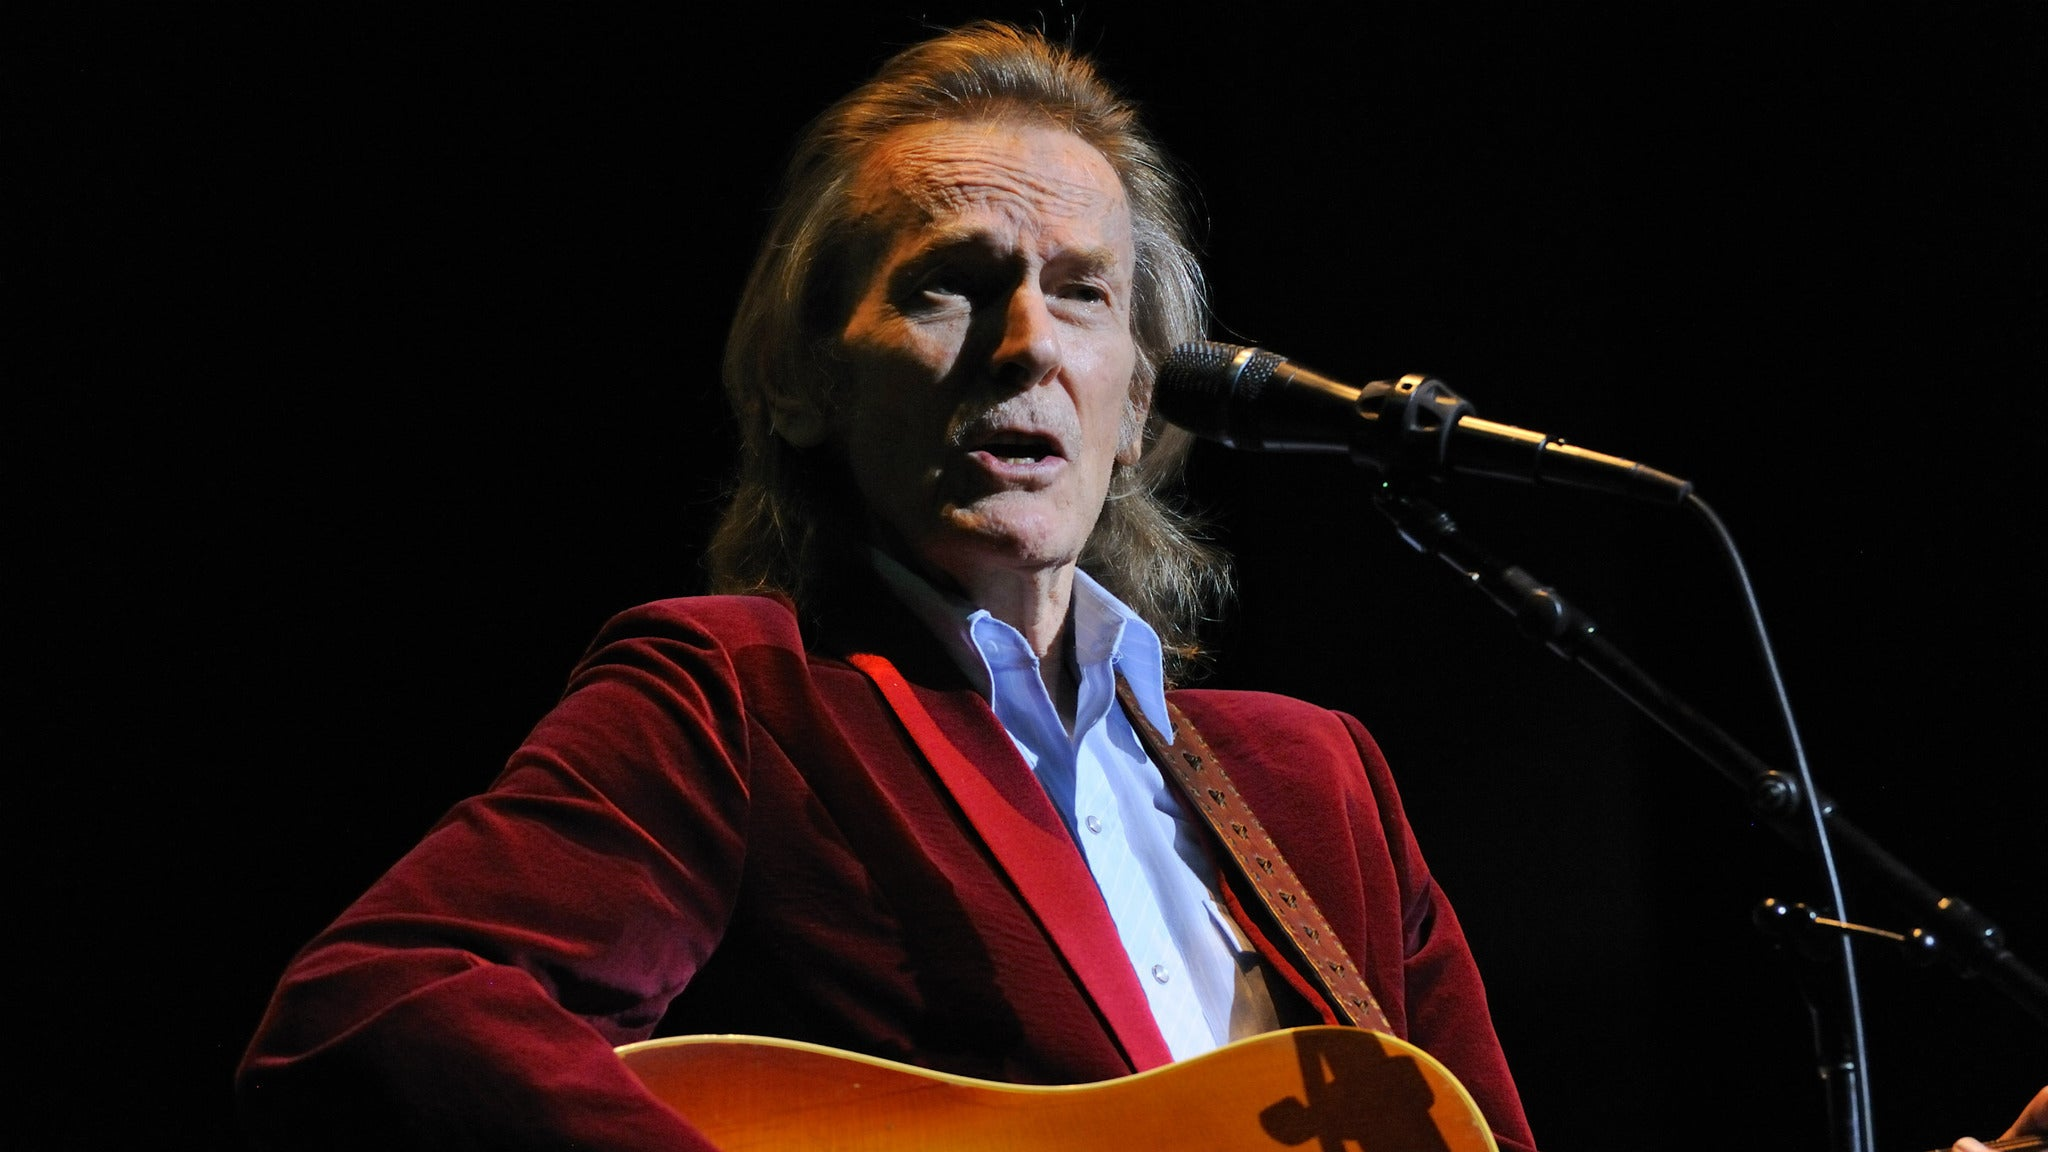 Gordon Lightfoot - The Legend Lives On